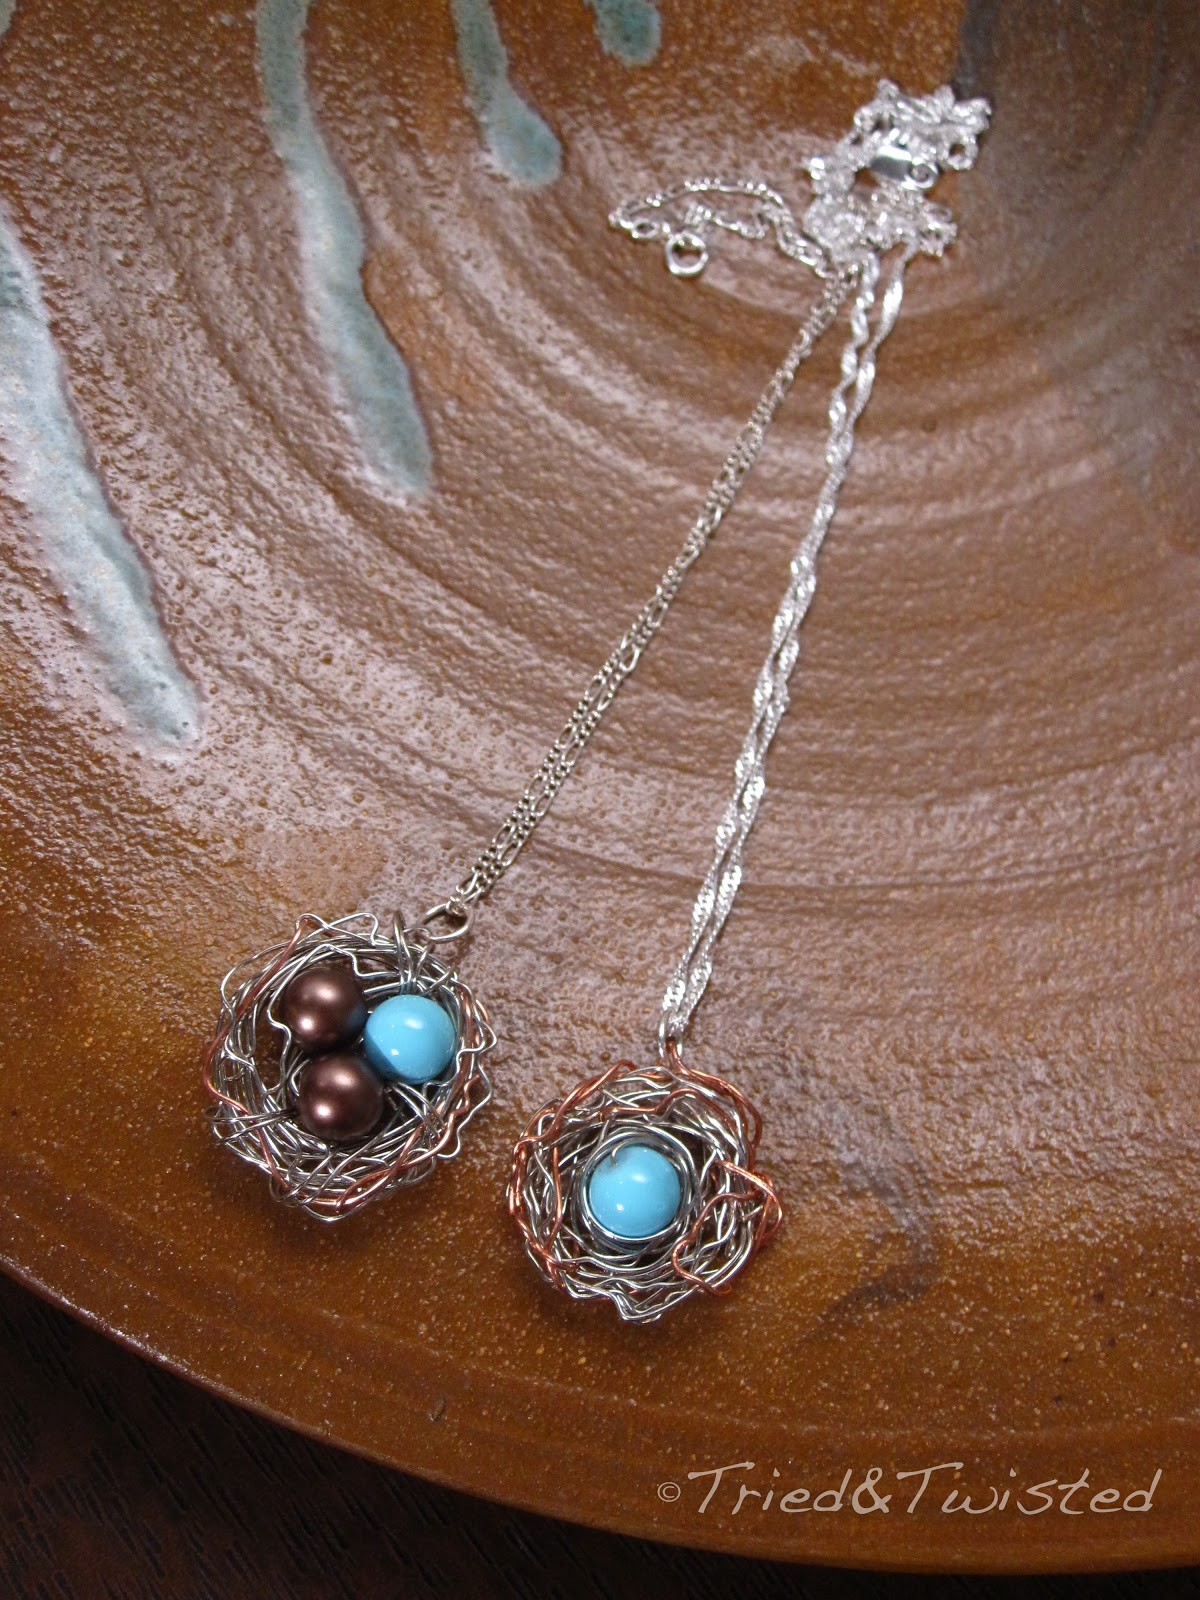 Tried and twisted diy bird nest necklace with a twist diy bird nest necklace triedtwisted aloadofball Choice Image